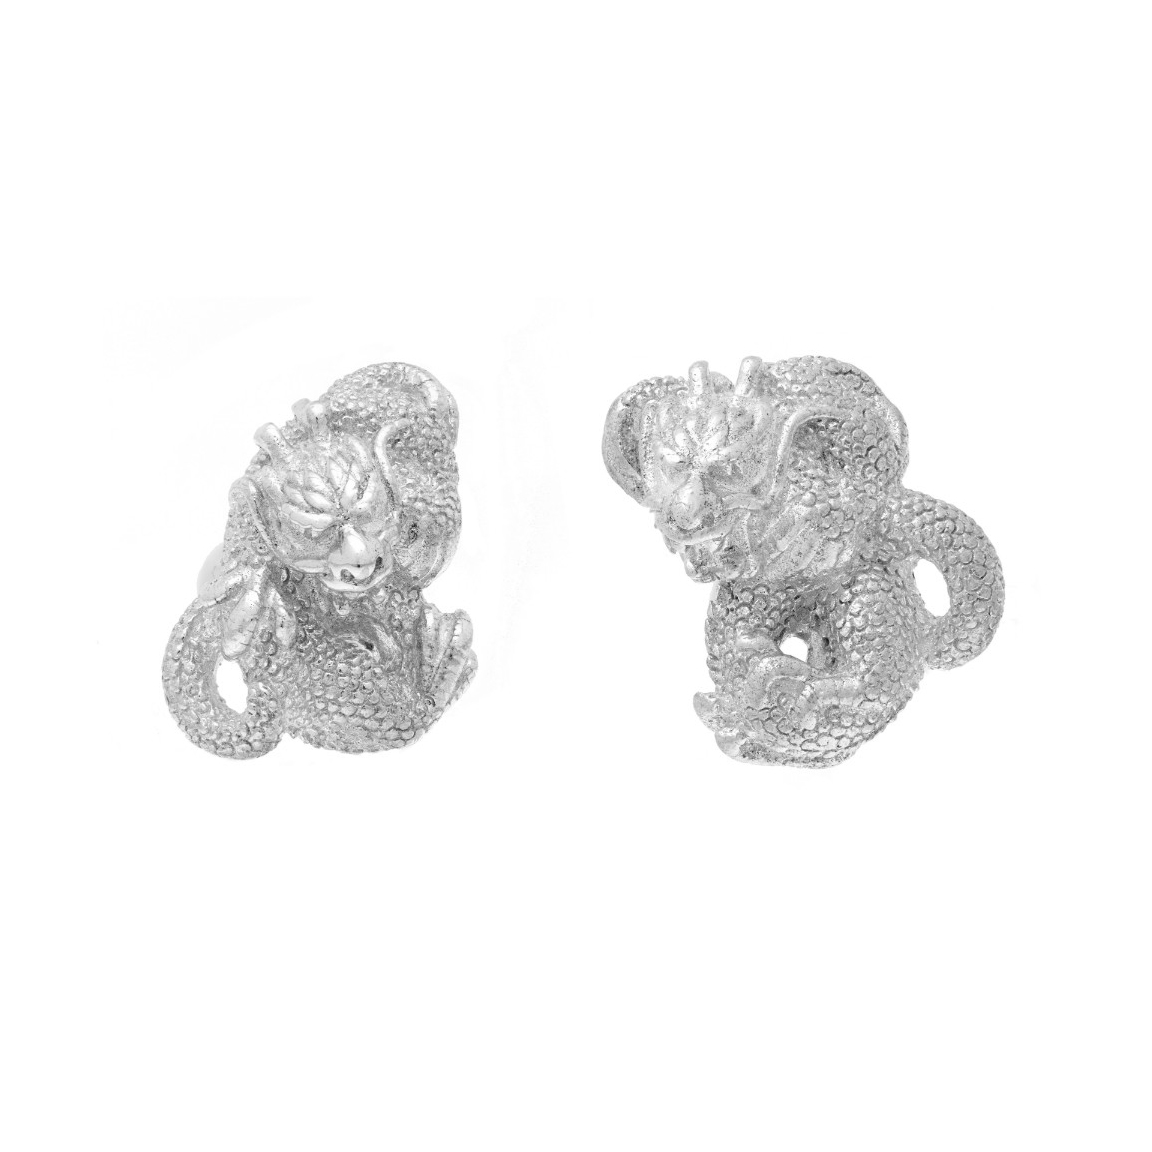 Chinese Zodiac Dragon Cufflink